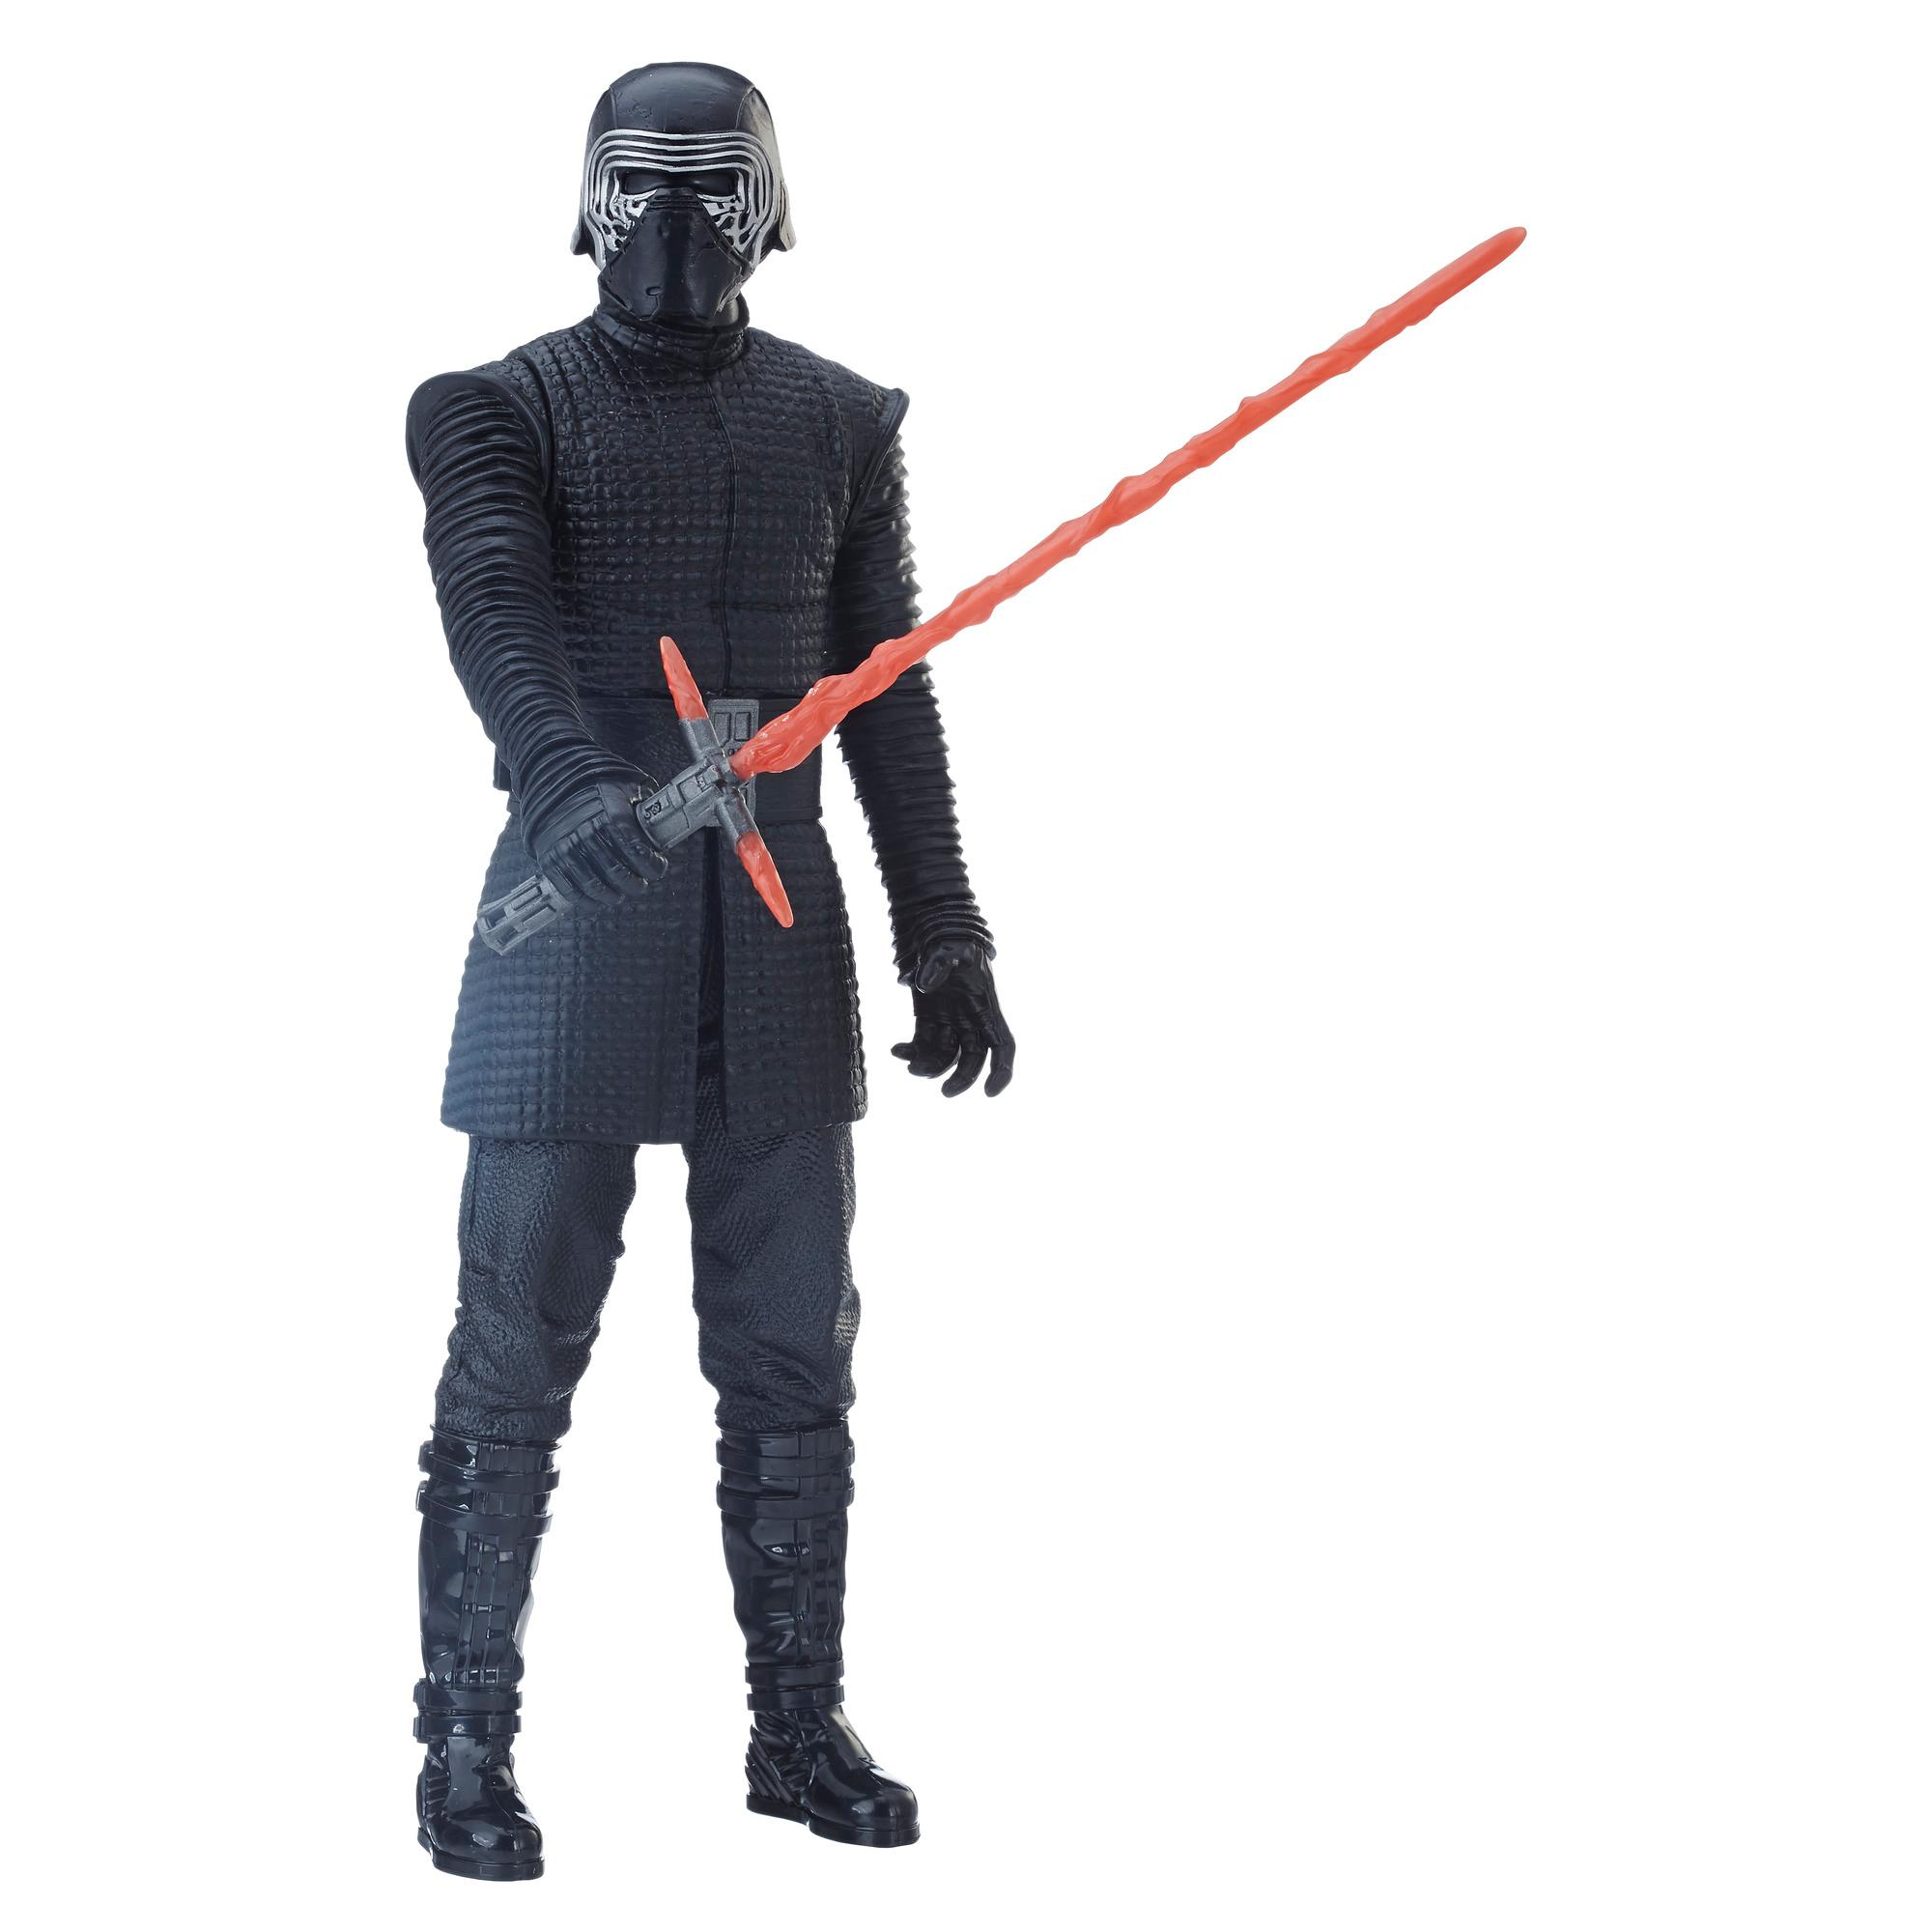 Star Wars: The Last Jedi 12-inch Kylo Ren Figure